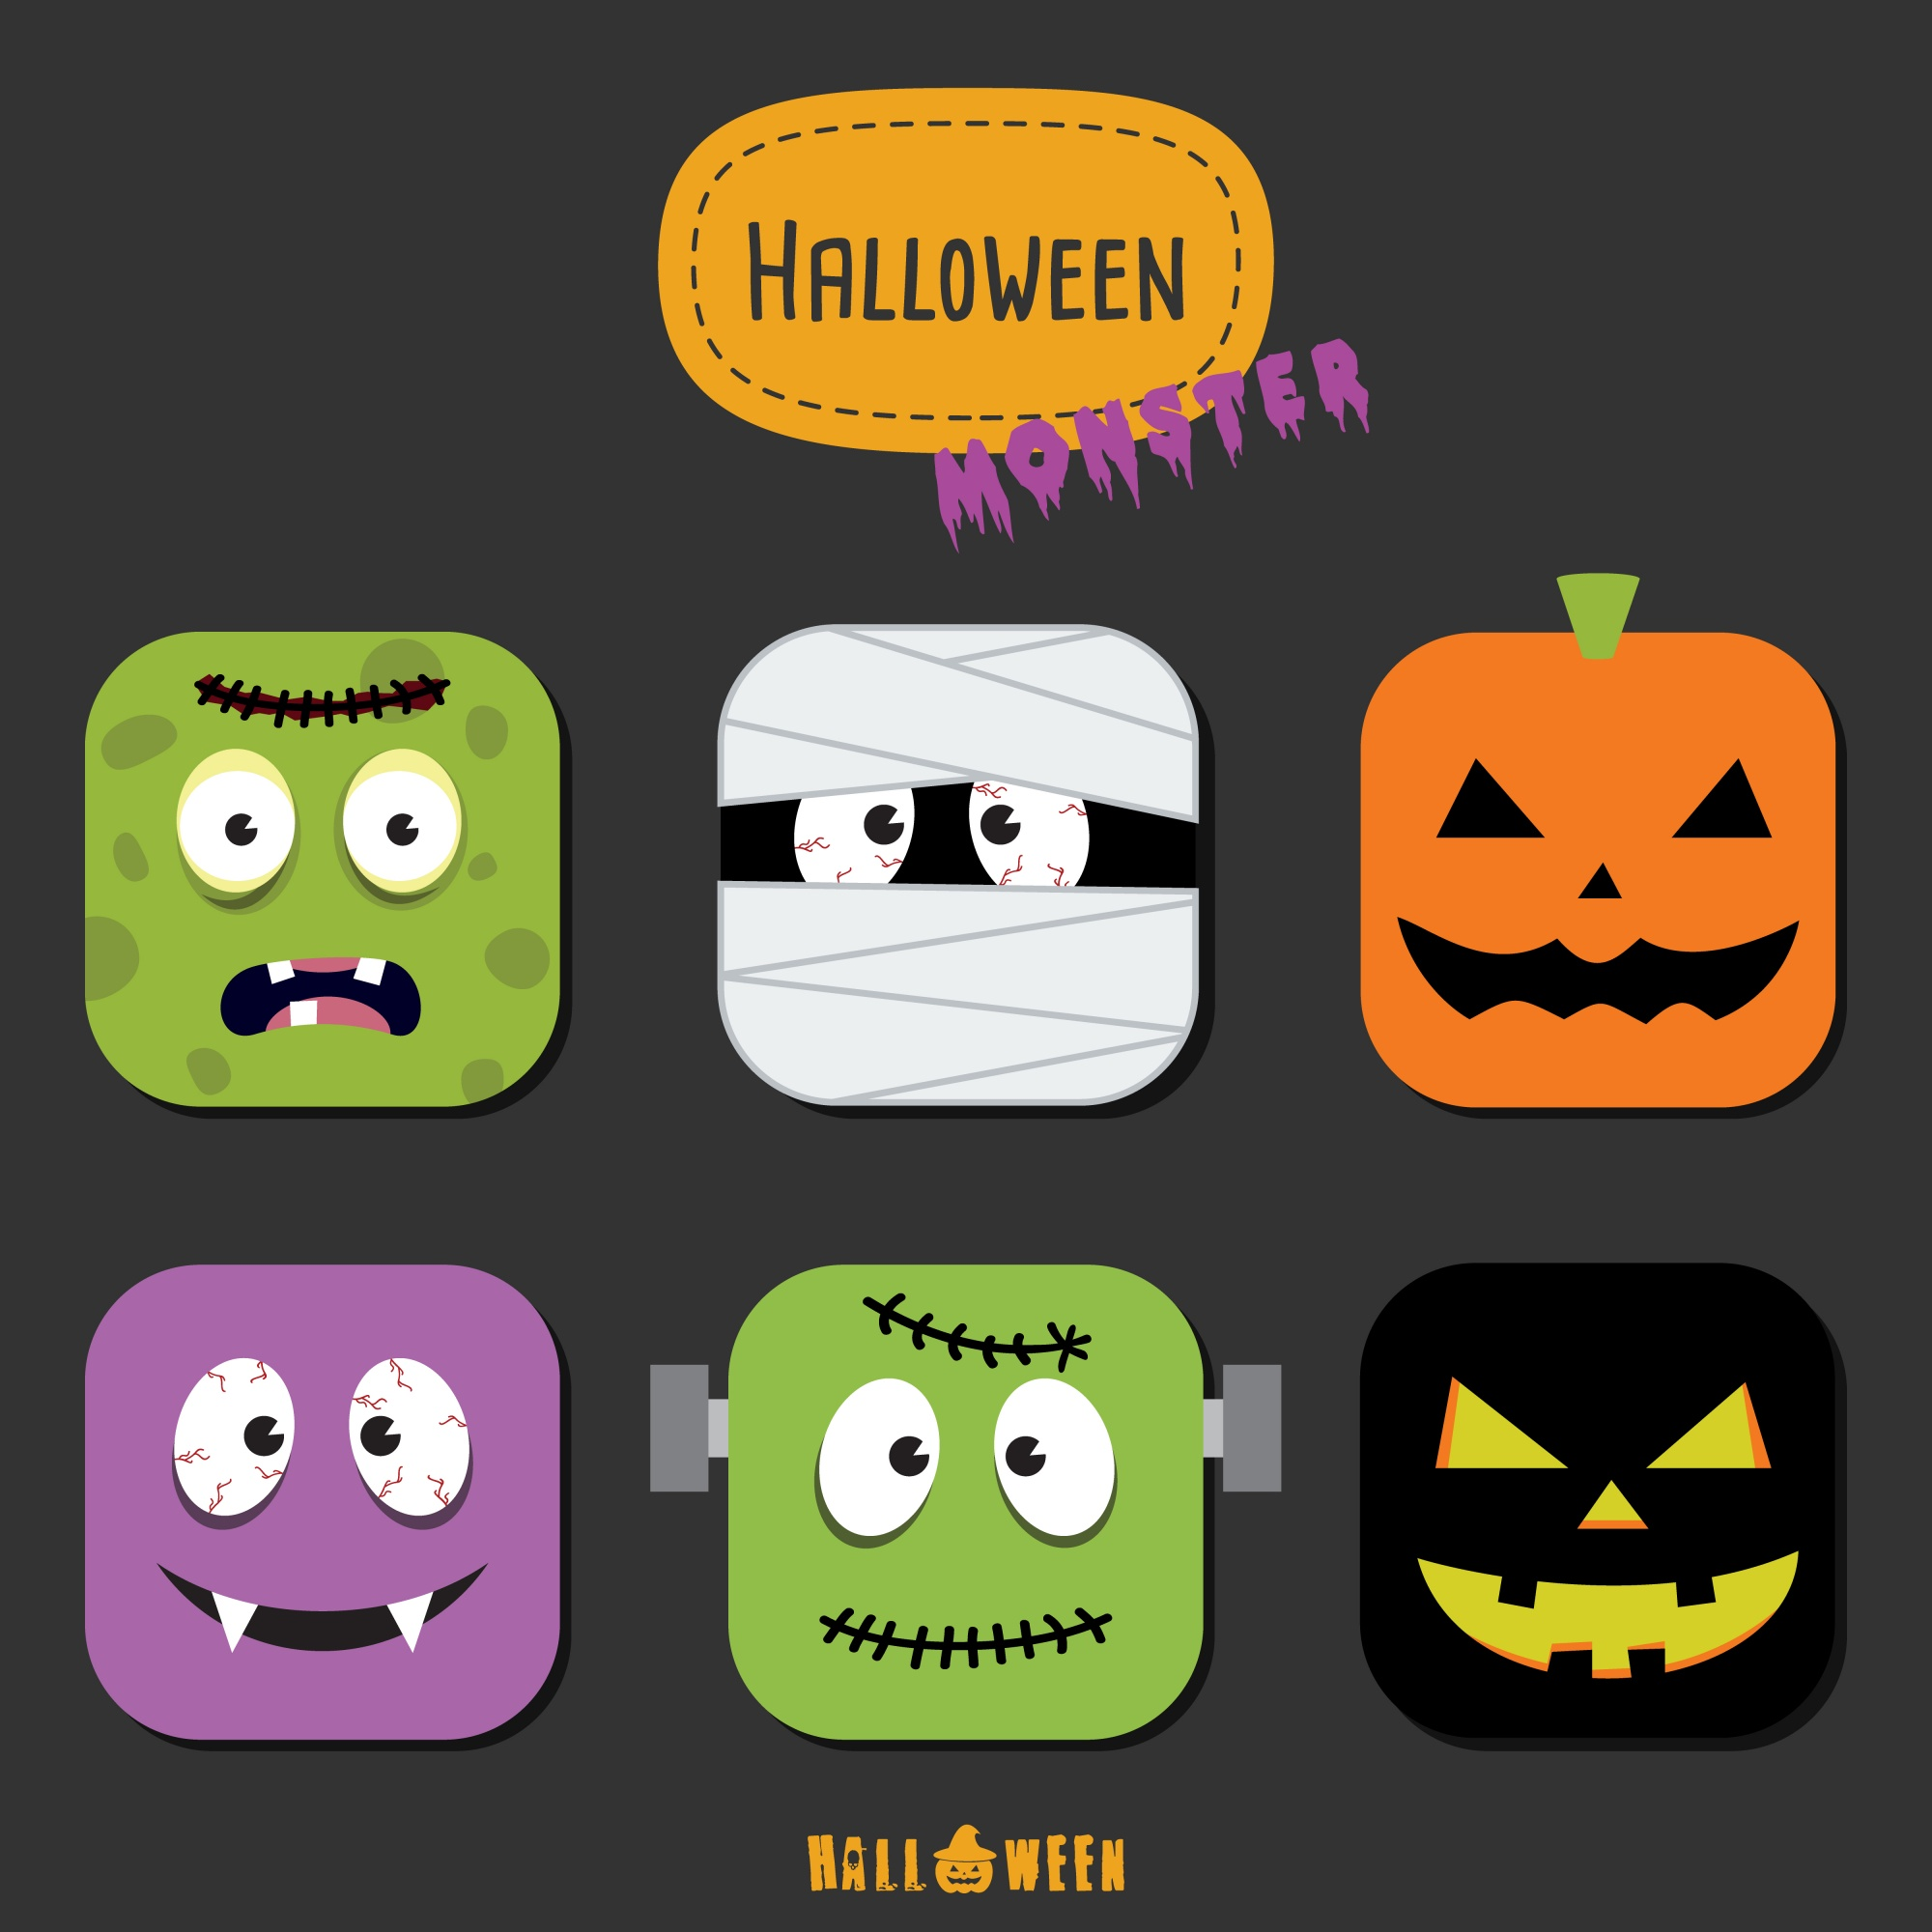 Halloween-Monster bunte Icon-Set flache Design Vektor-Illustration Halloween-Design-Vorlage für Grußkarte, Werbung, Poster, Flyer, Blog, Artikel, Social Media, Marketing.